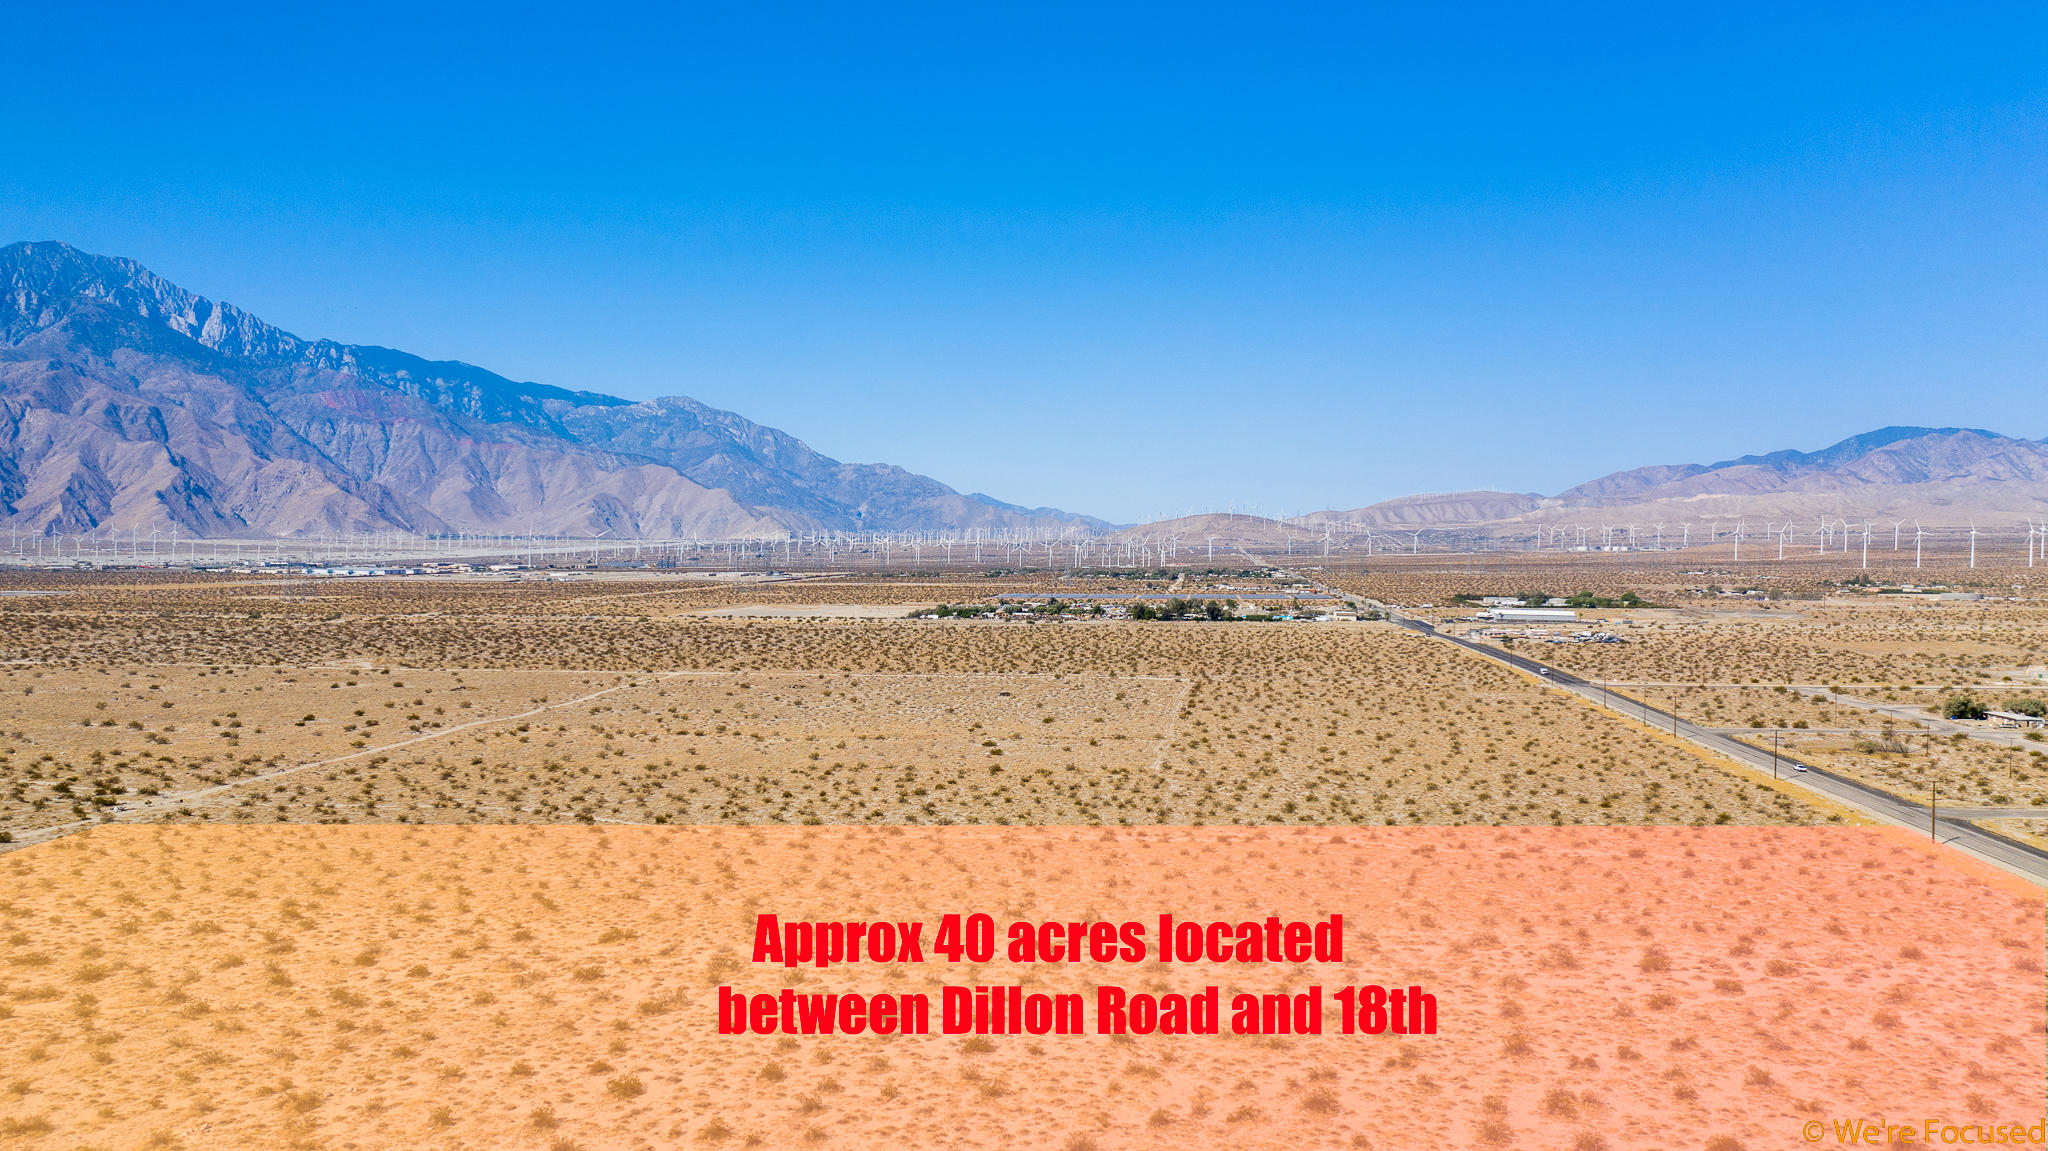 Located just 5 min from HWY 10 on and off ramps and equidistant to downtown Desert Hot Springs.  This property is ideally located for a new residential development.